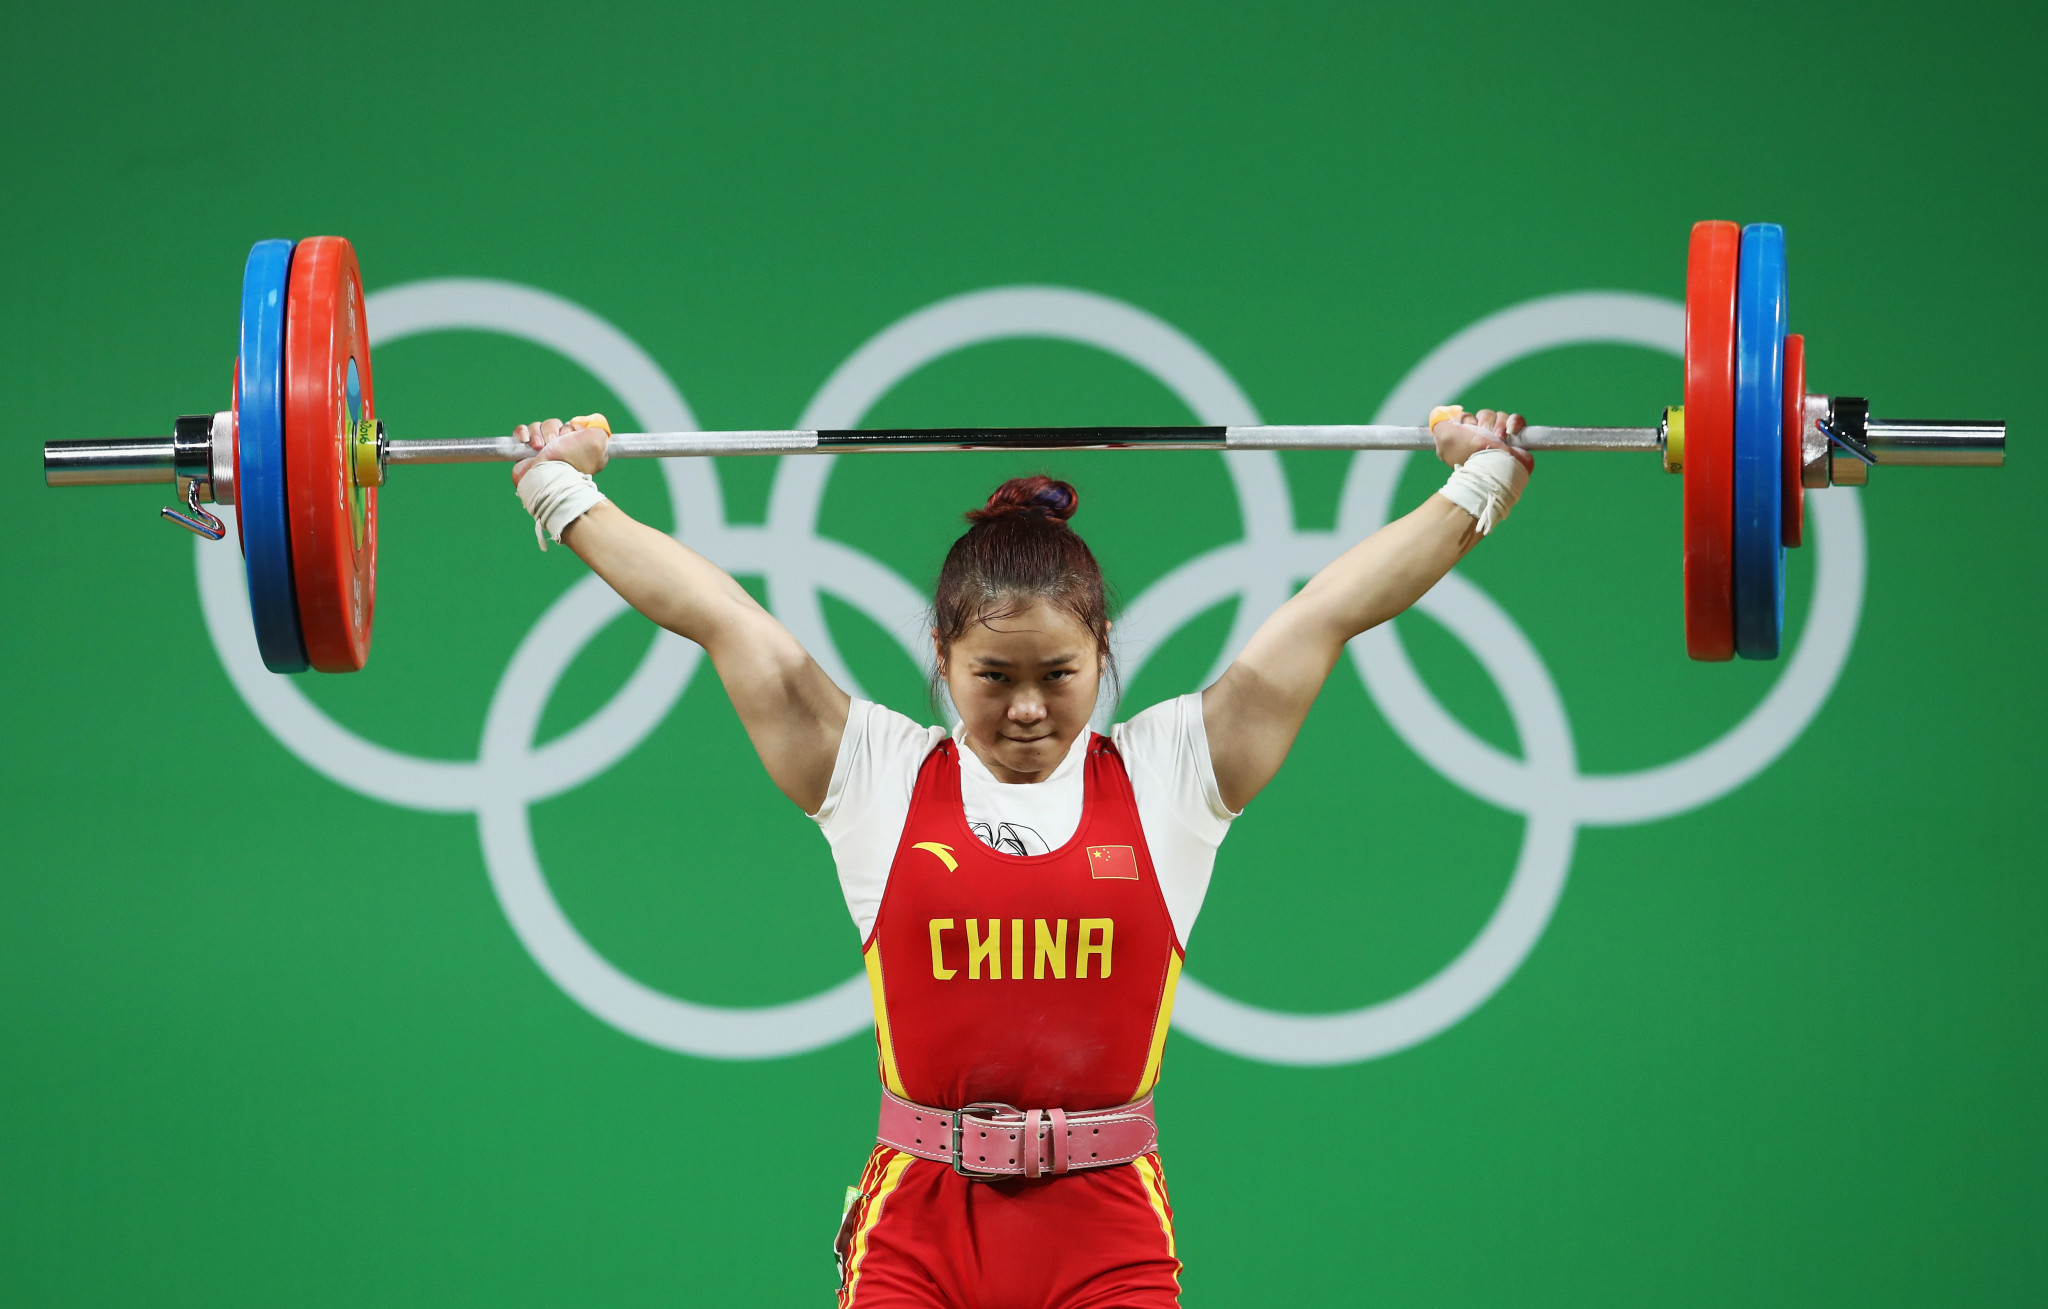 China's weightlifting world record holders Deng Wei and Tian Tao out of Tokyo 2020